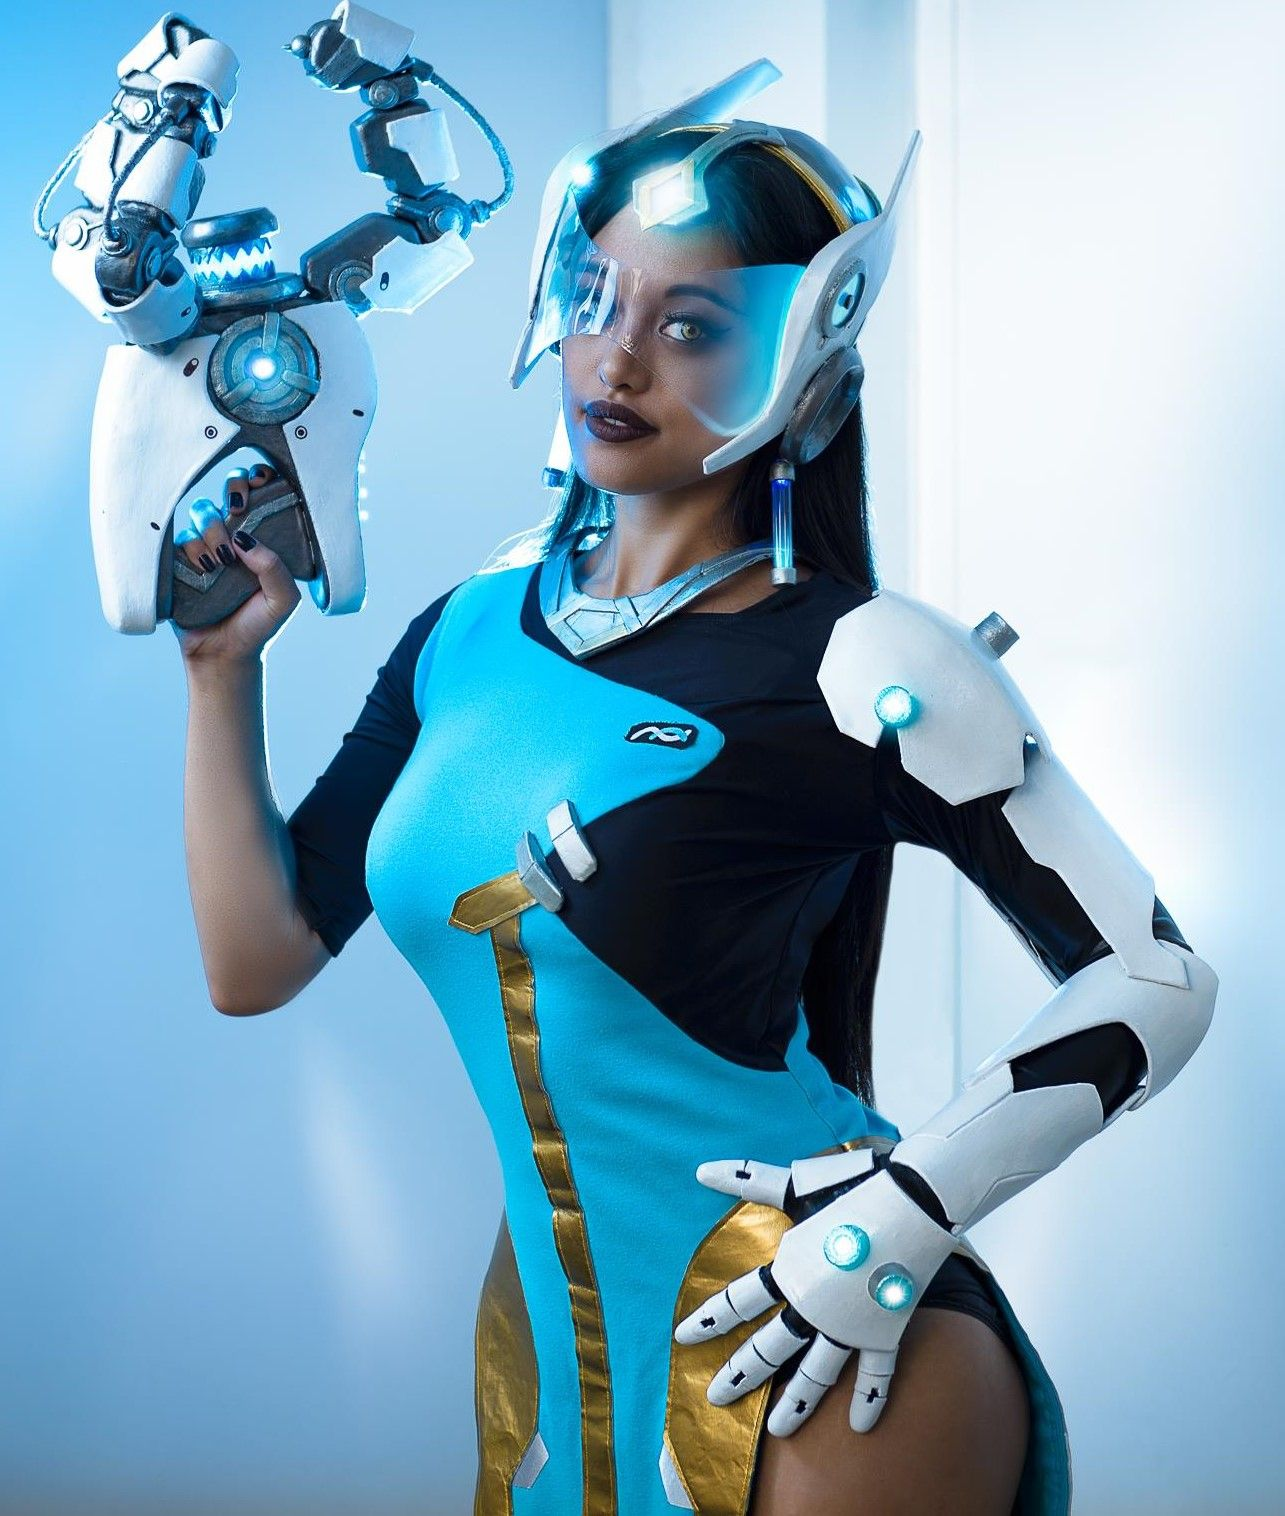 Symmetra Overwatch Photoshoot Pics